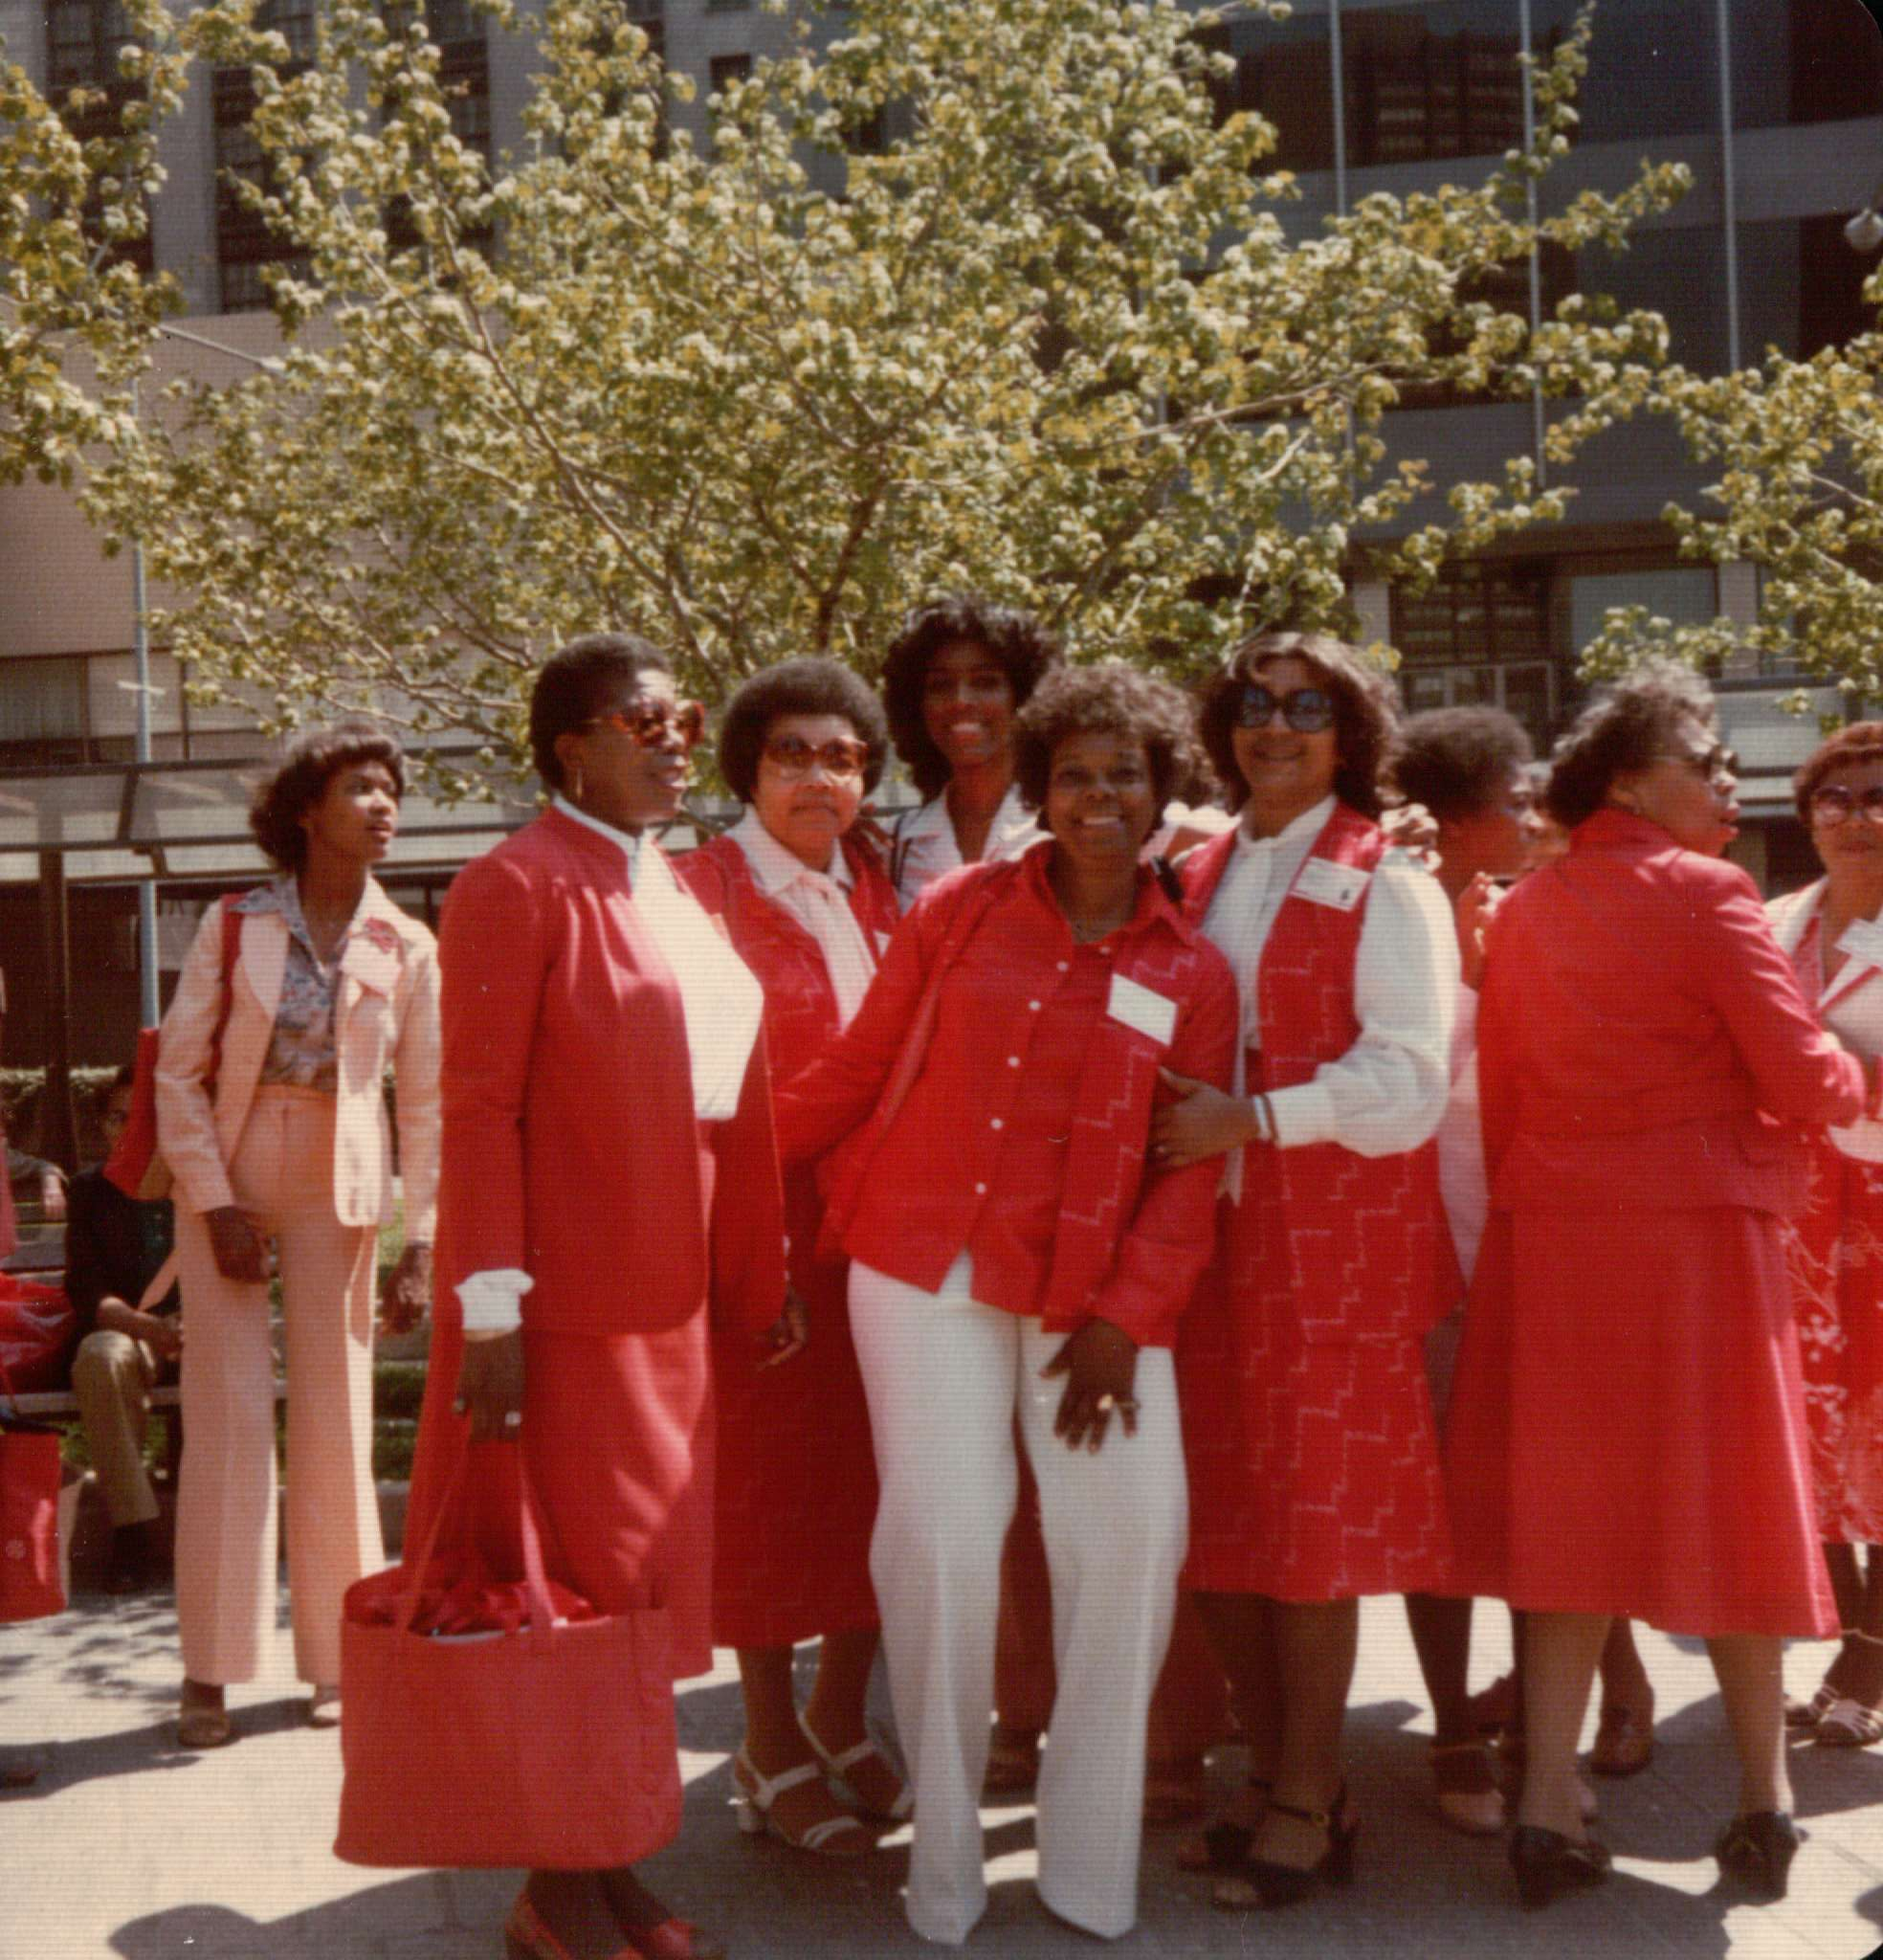 Queens Alumnae Sisters at Regional Conference circa 1980